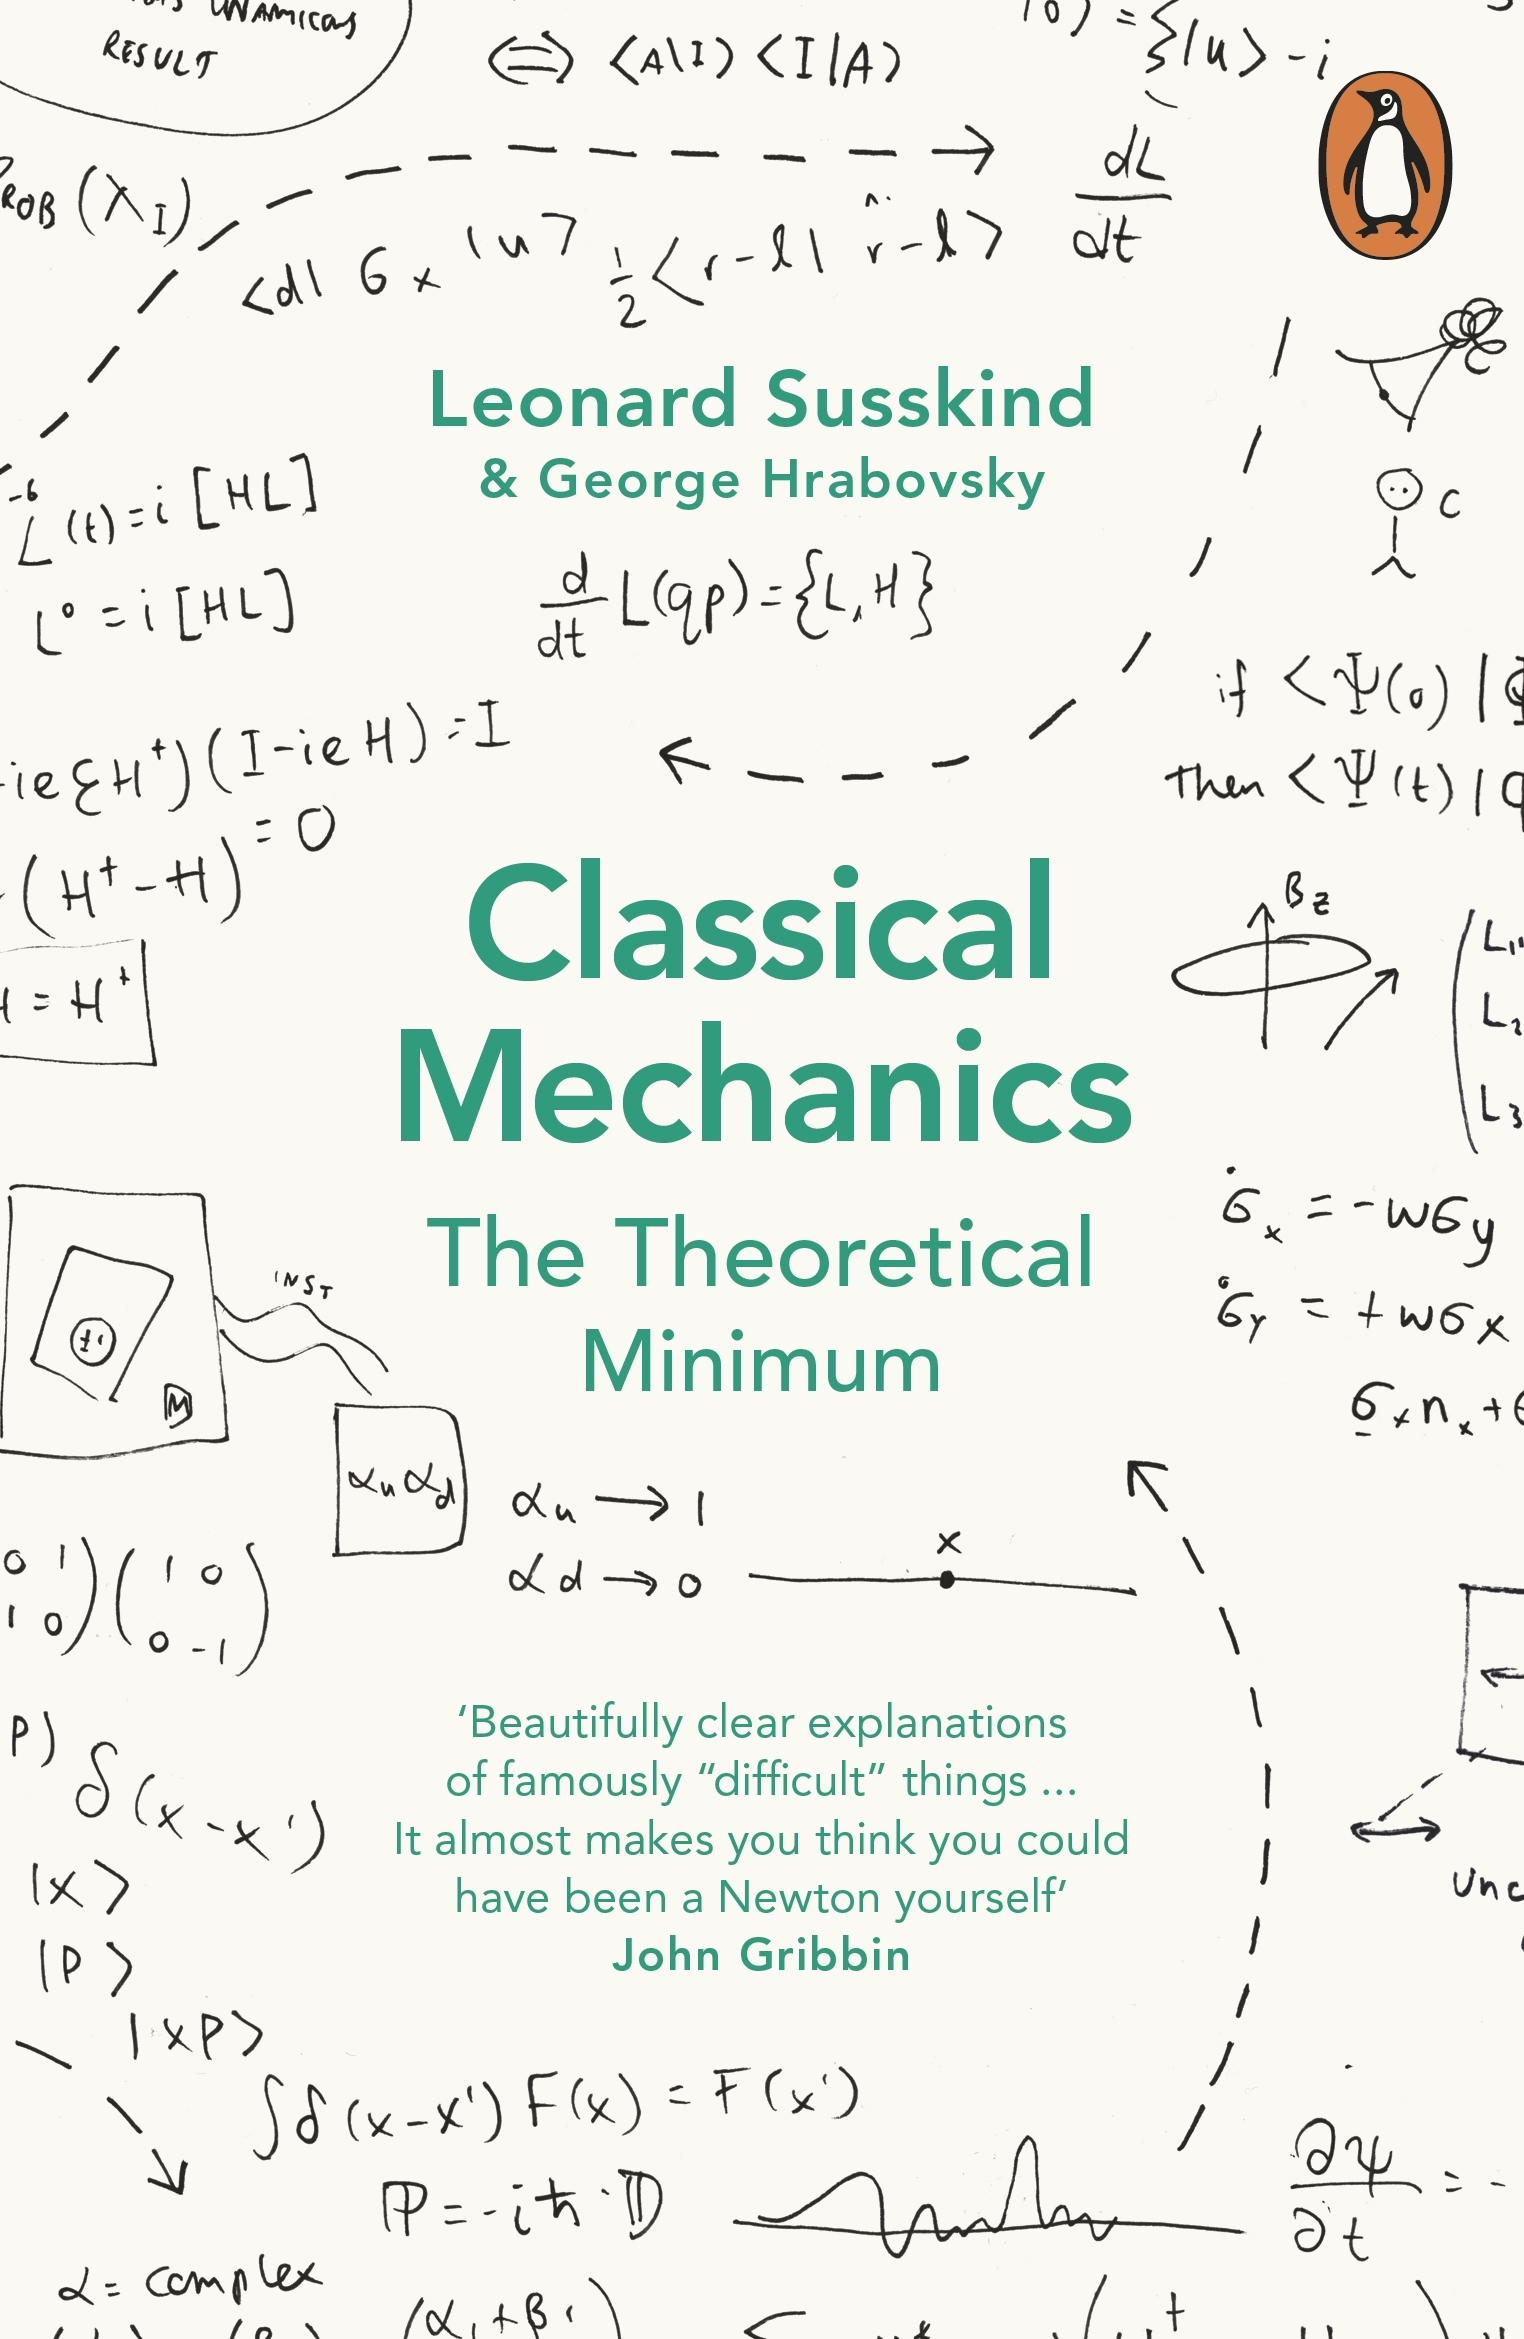 classical mechanics Classical mechanics is the mathematical study of the motion of everyday objects and the forces that affect them.